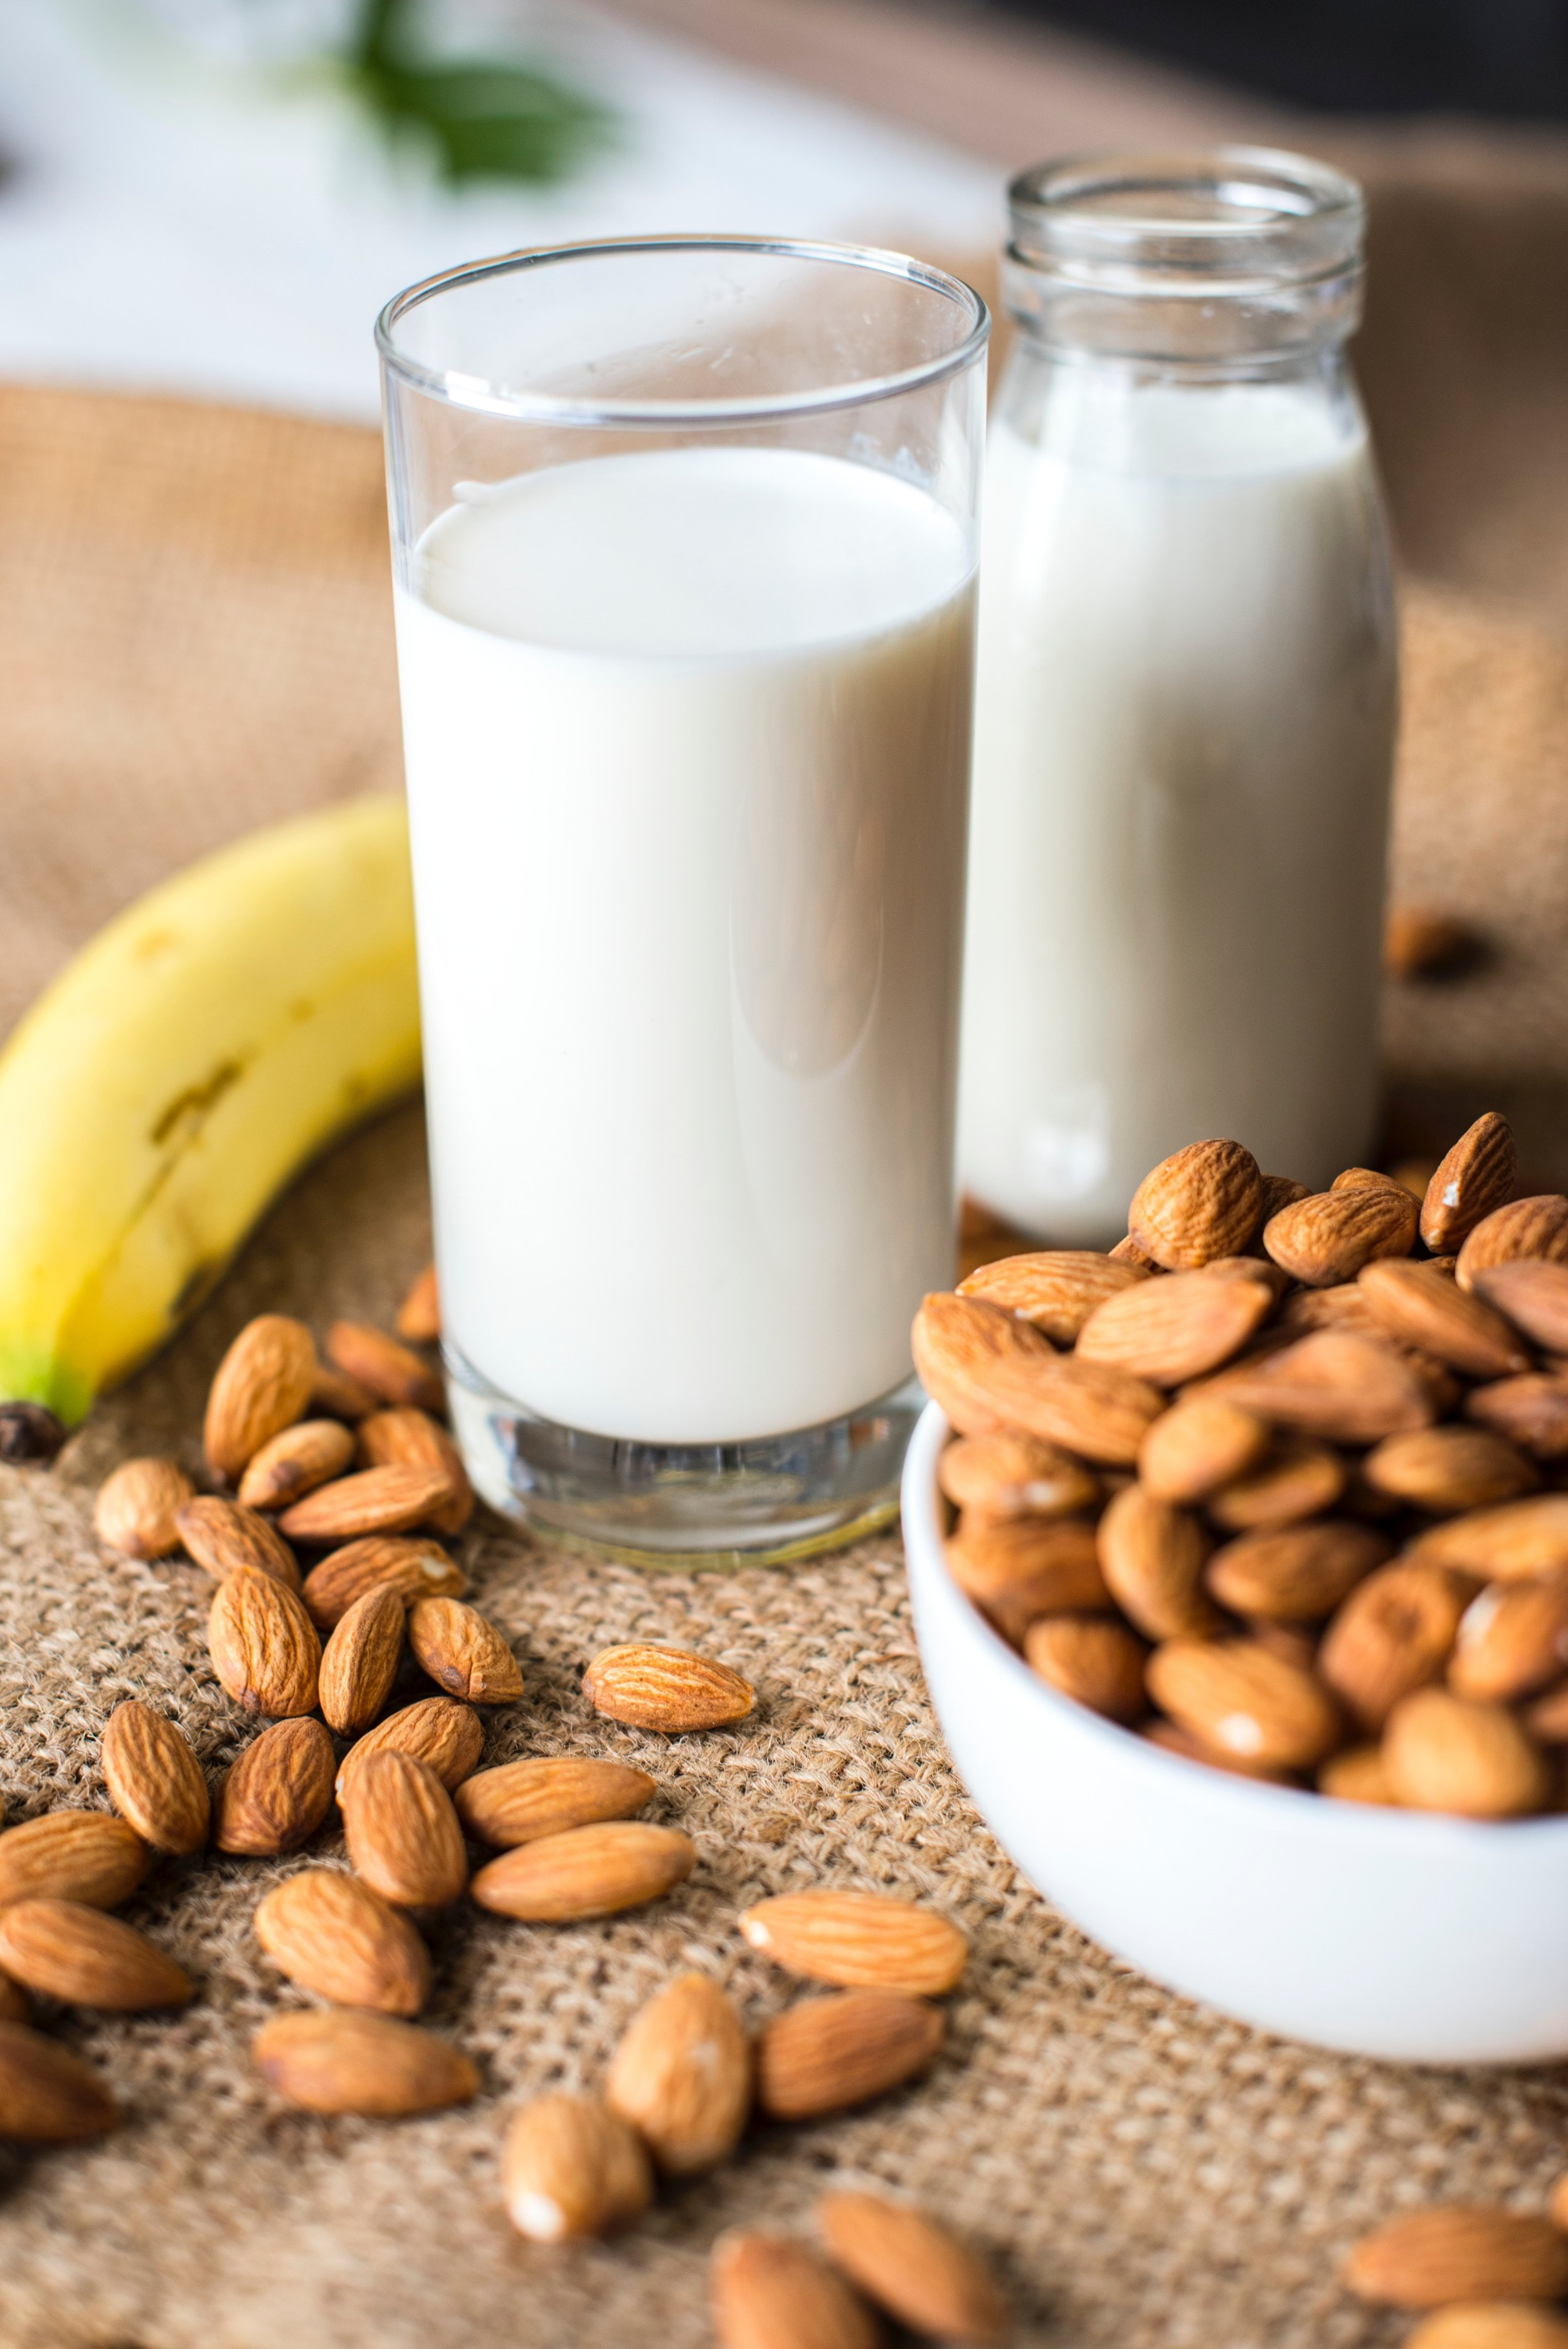 Almonds are high in calcium, which strengthens our bones.